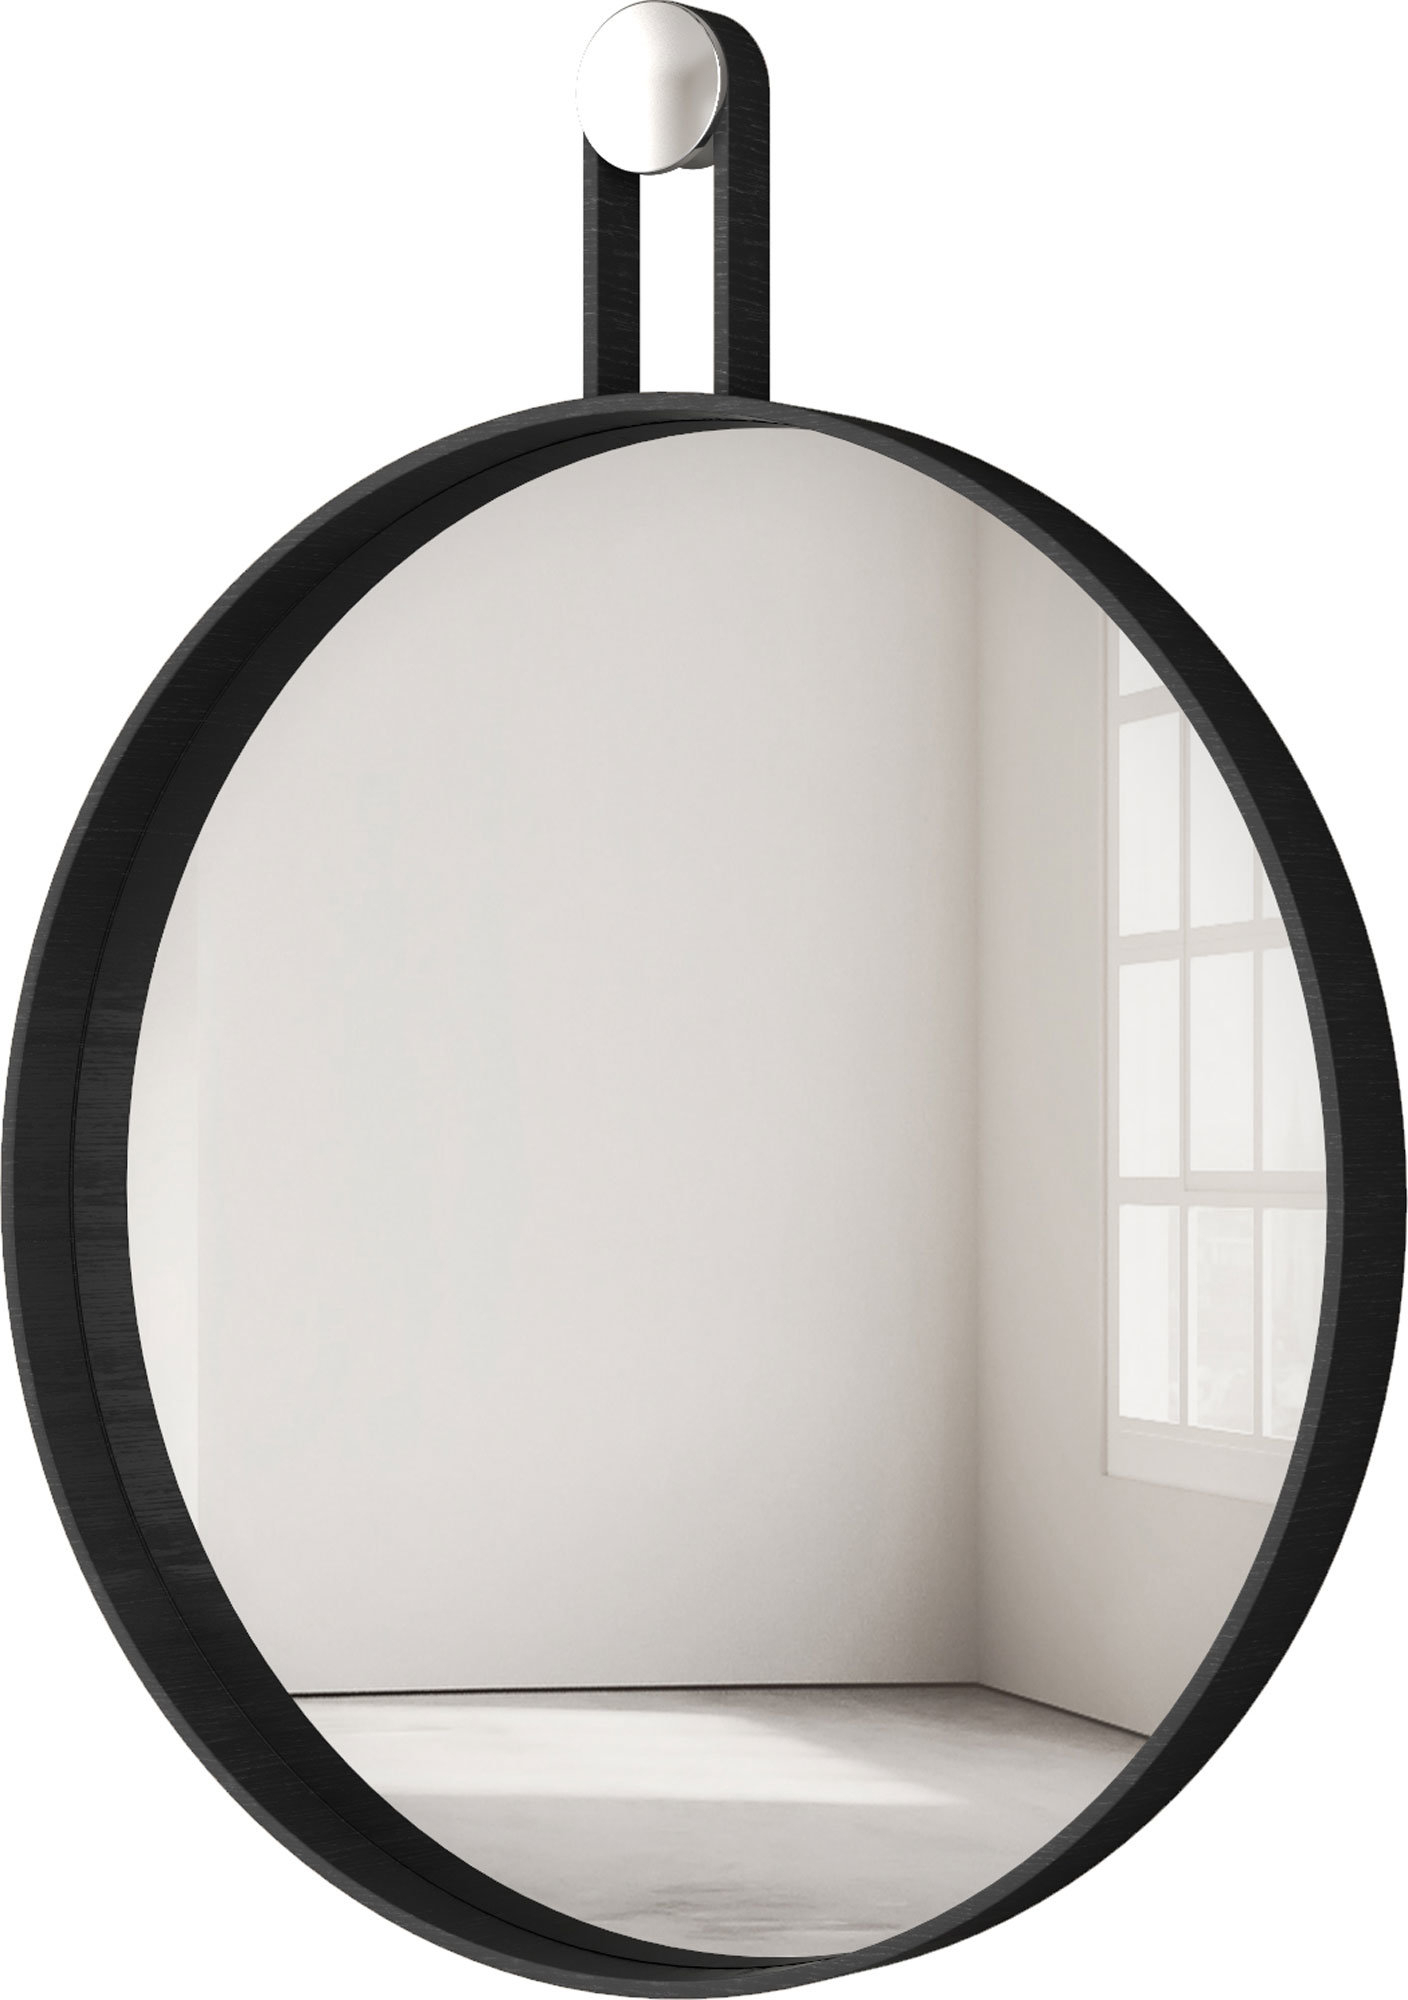 Lilie Accent Mirror Inside Luna Accent Mirrors (View 8 of 30)